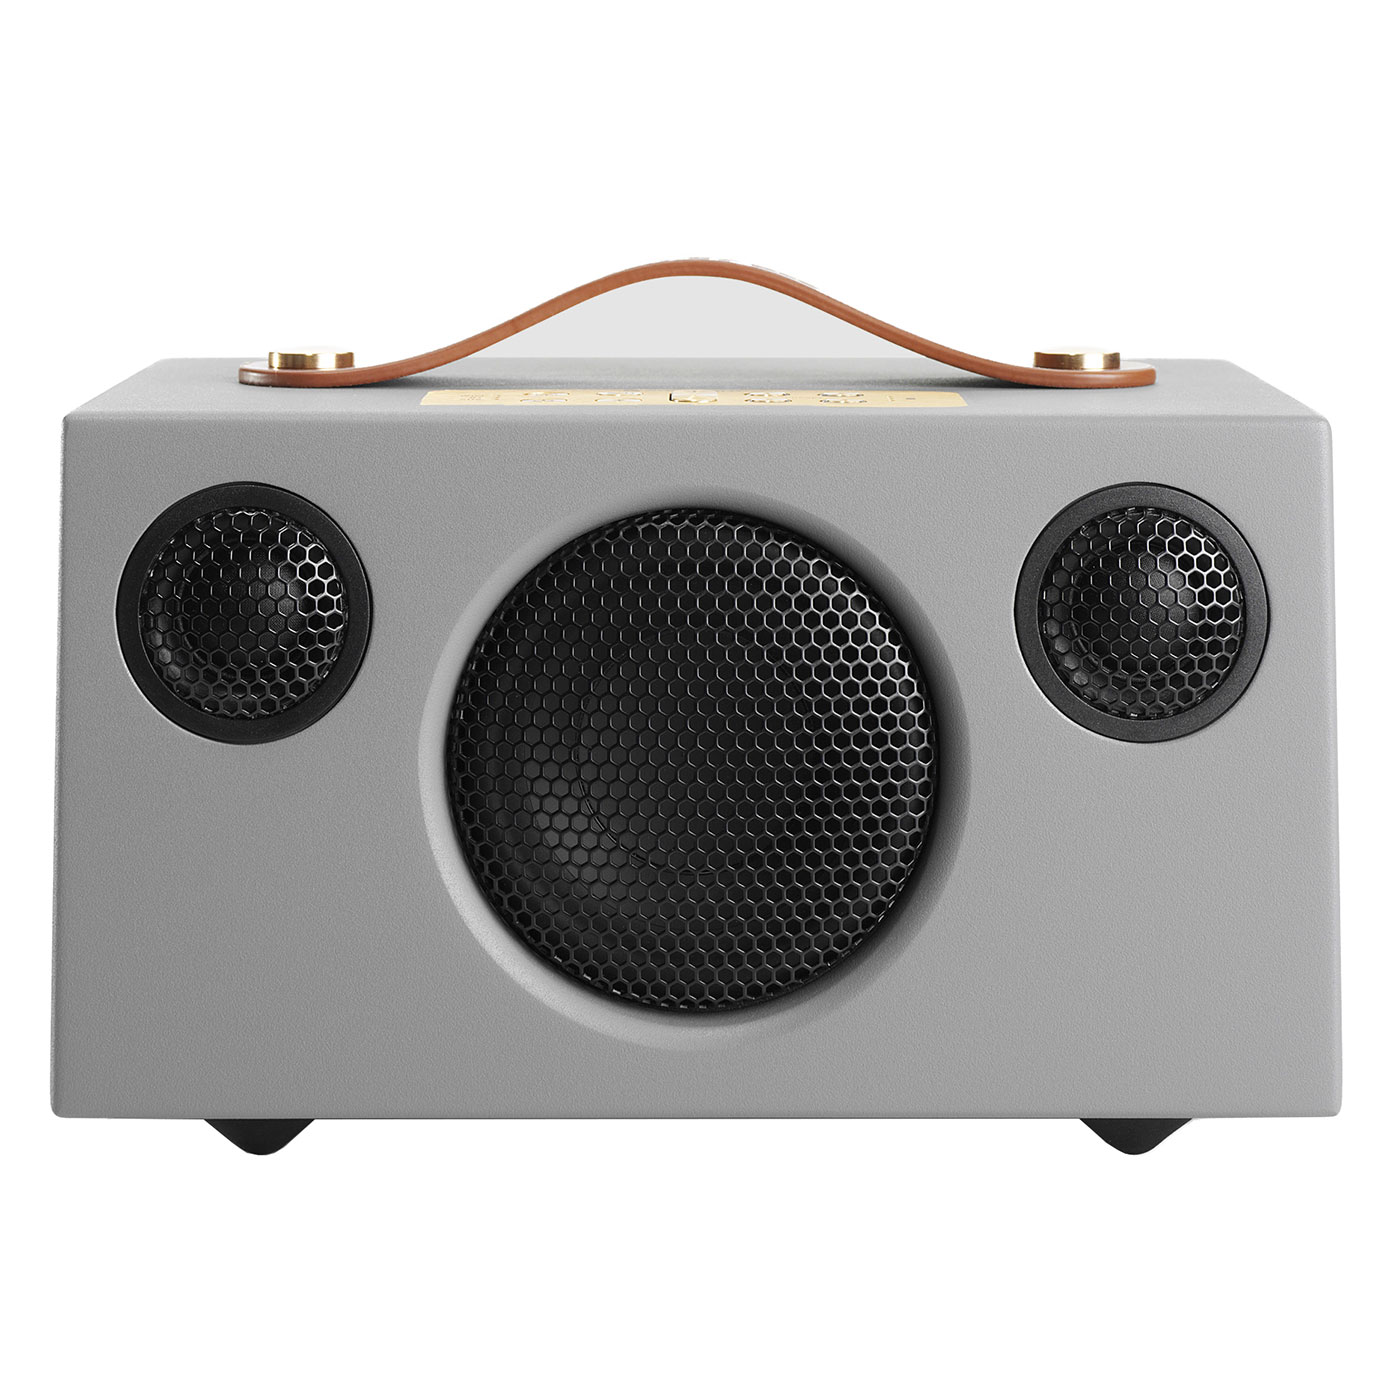 Réseau & Streaming audio Audio Pro Addon C3 Gris Enceinte portable sans fil multiroom avec Wi-Fi, Bluetooth, AirPlay et Spotify Connect